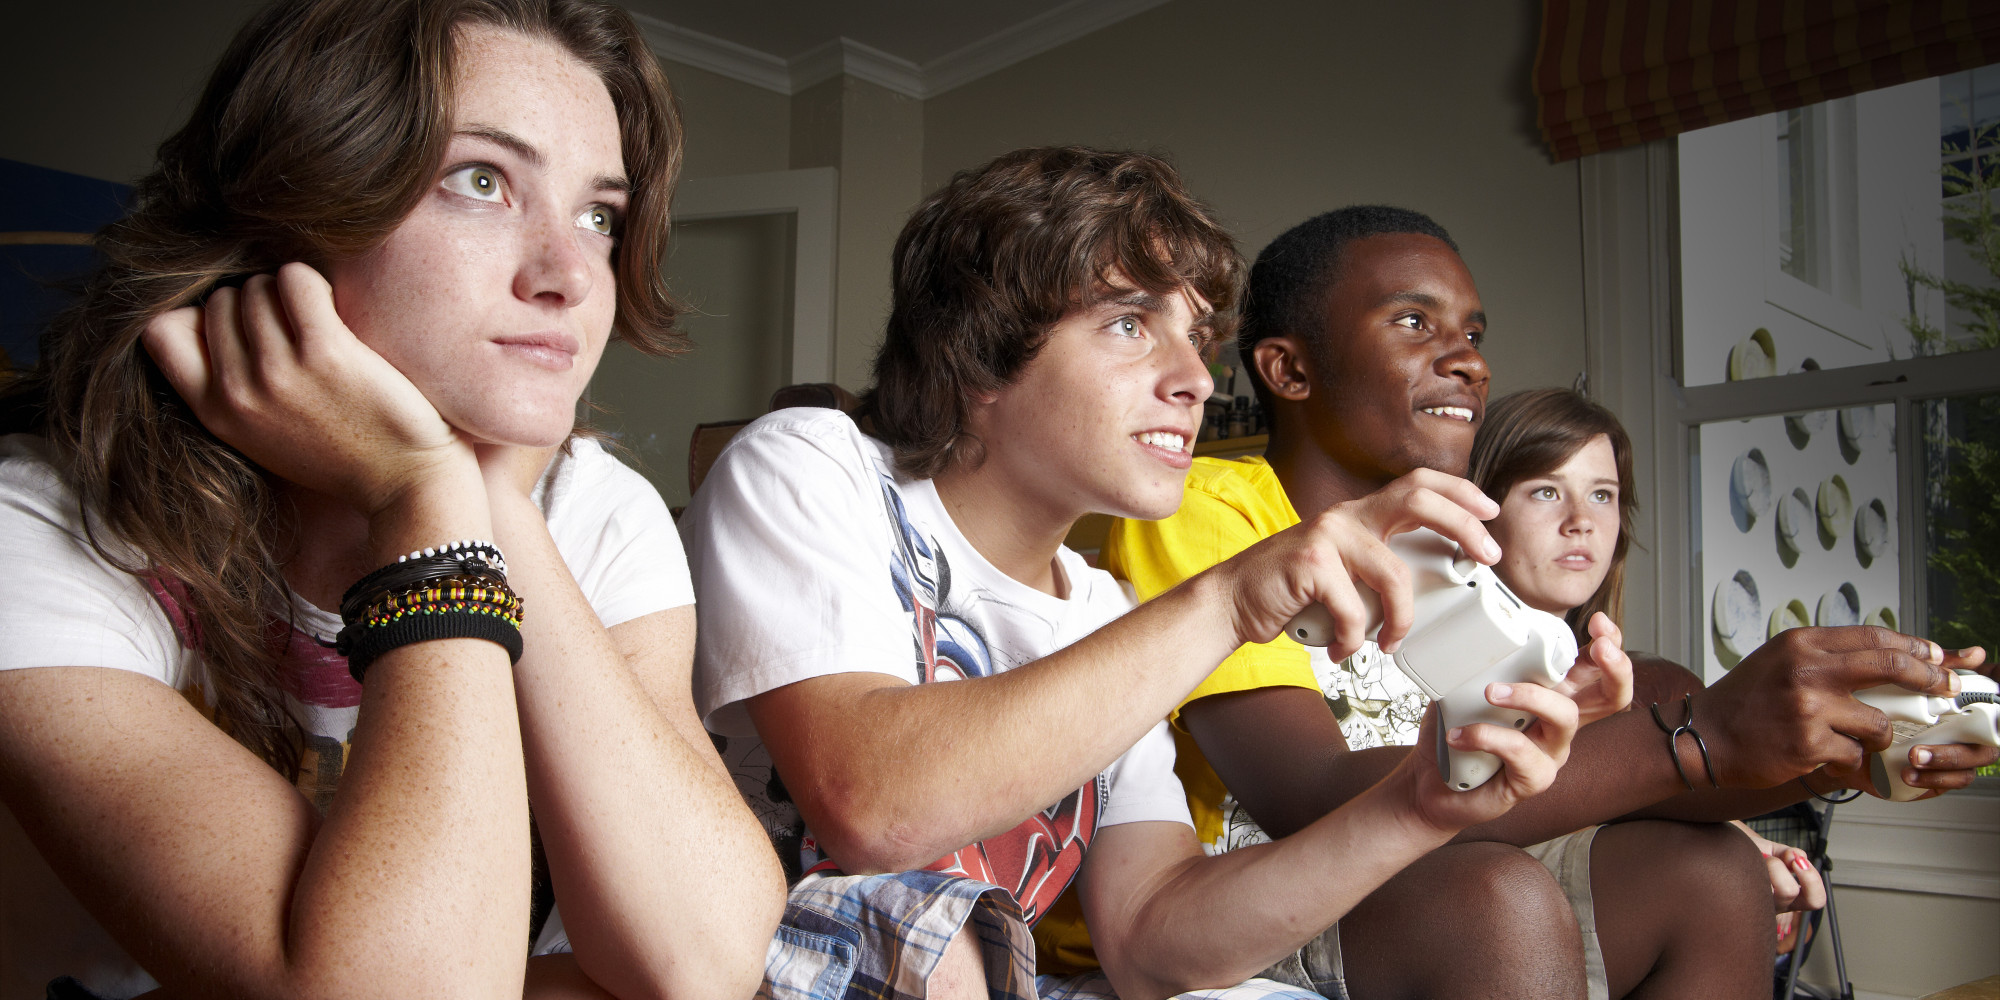 Teen Gaming in an M-Rated World